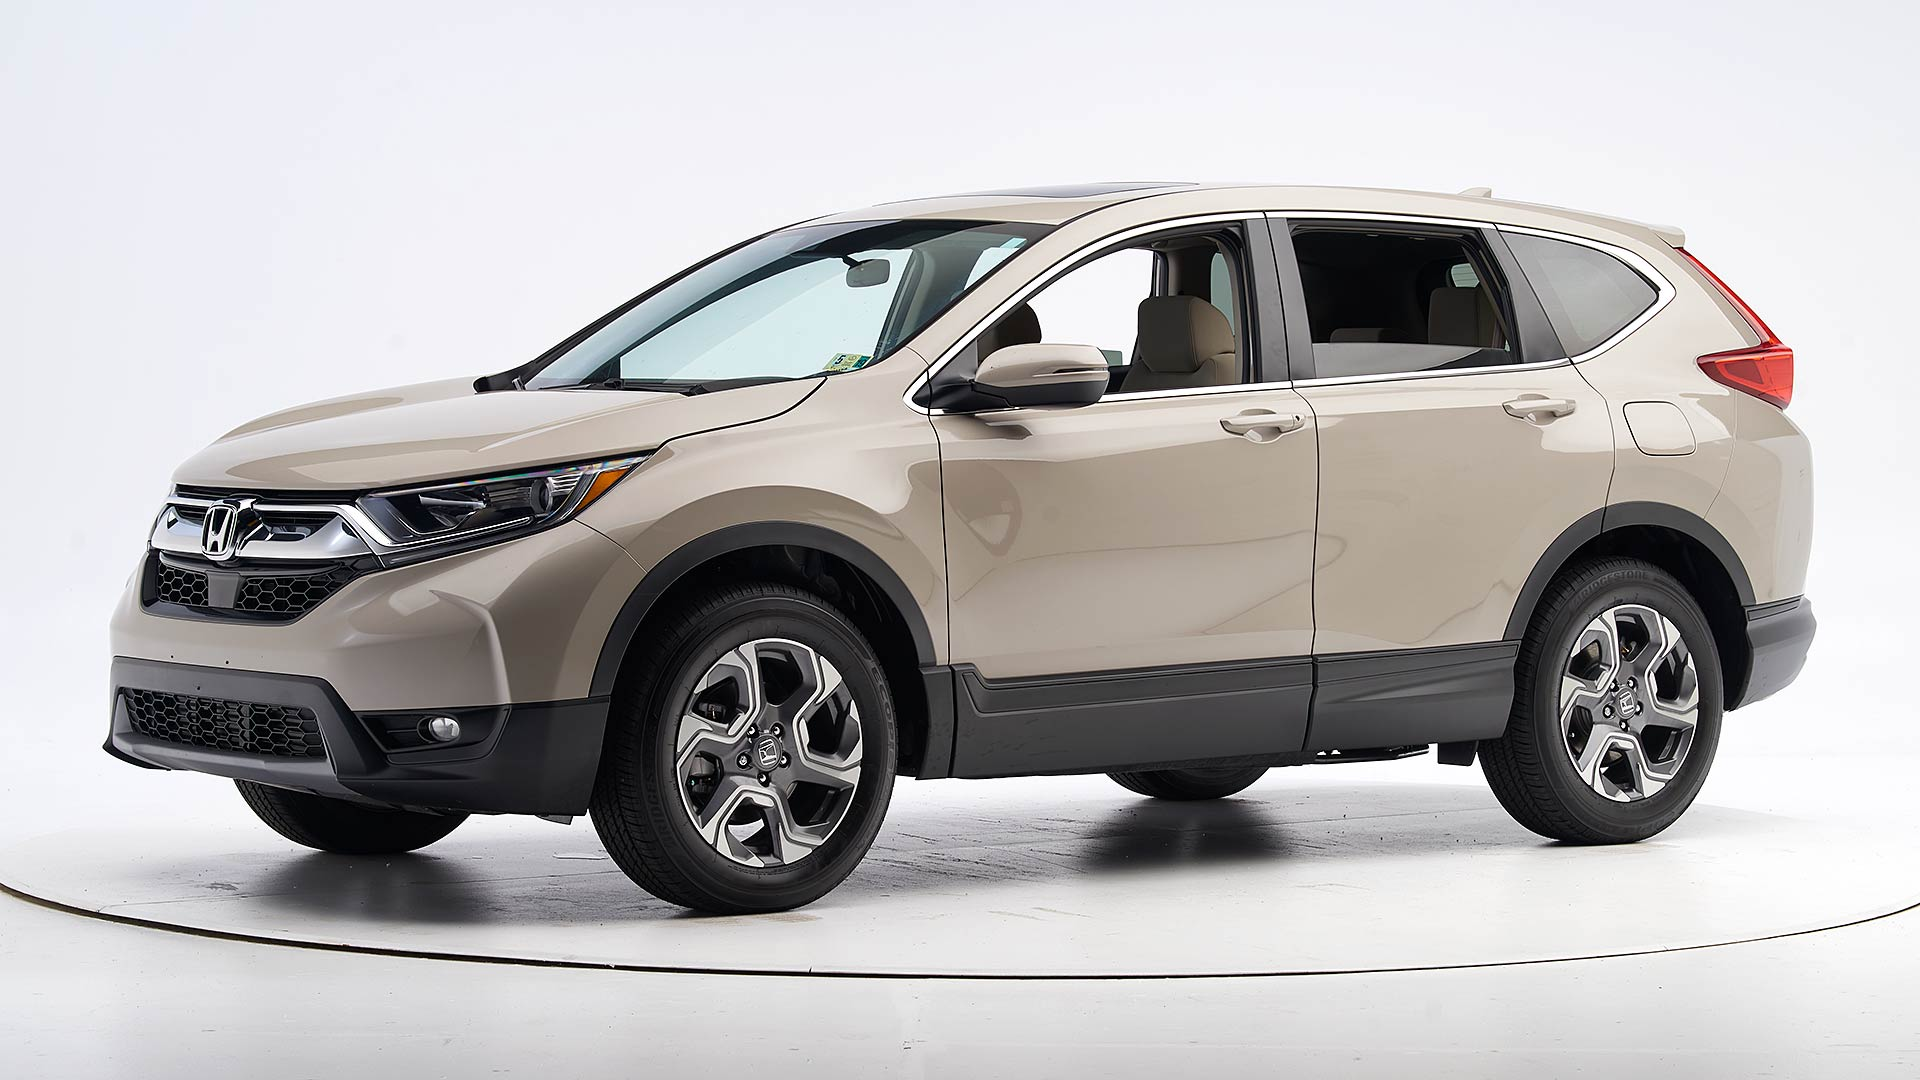 2018 Honda CR-V 4-door SUV